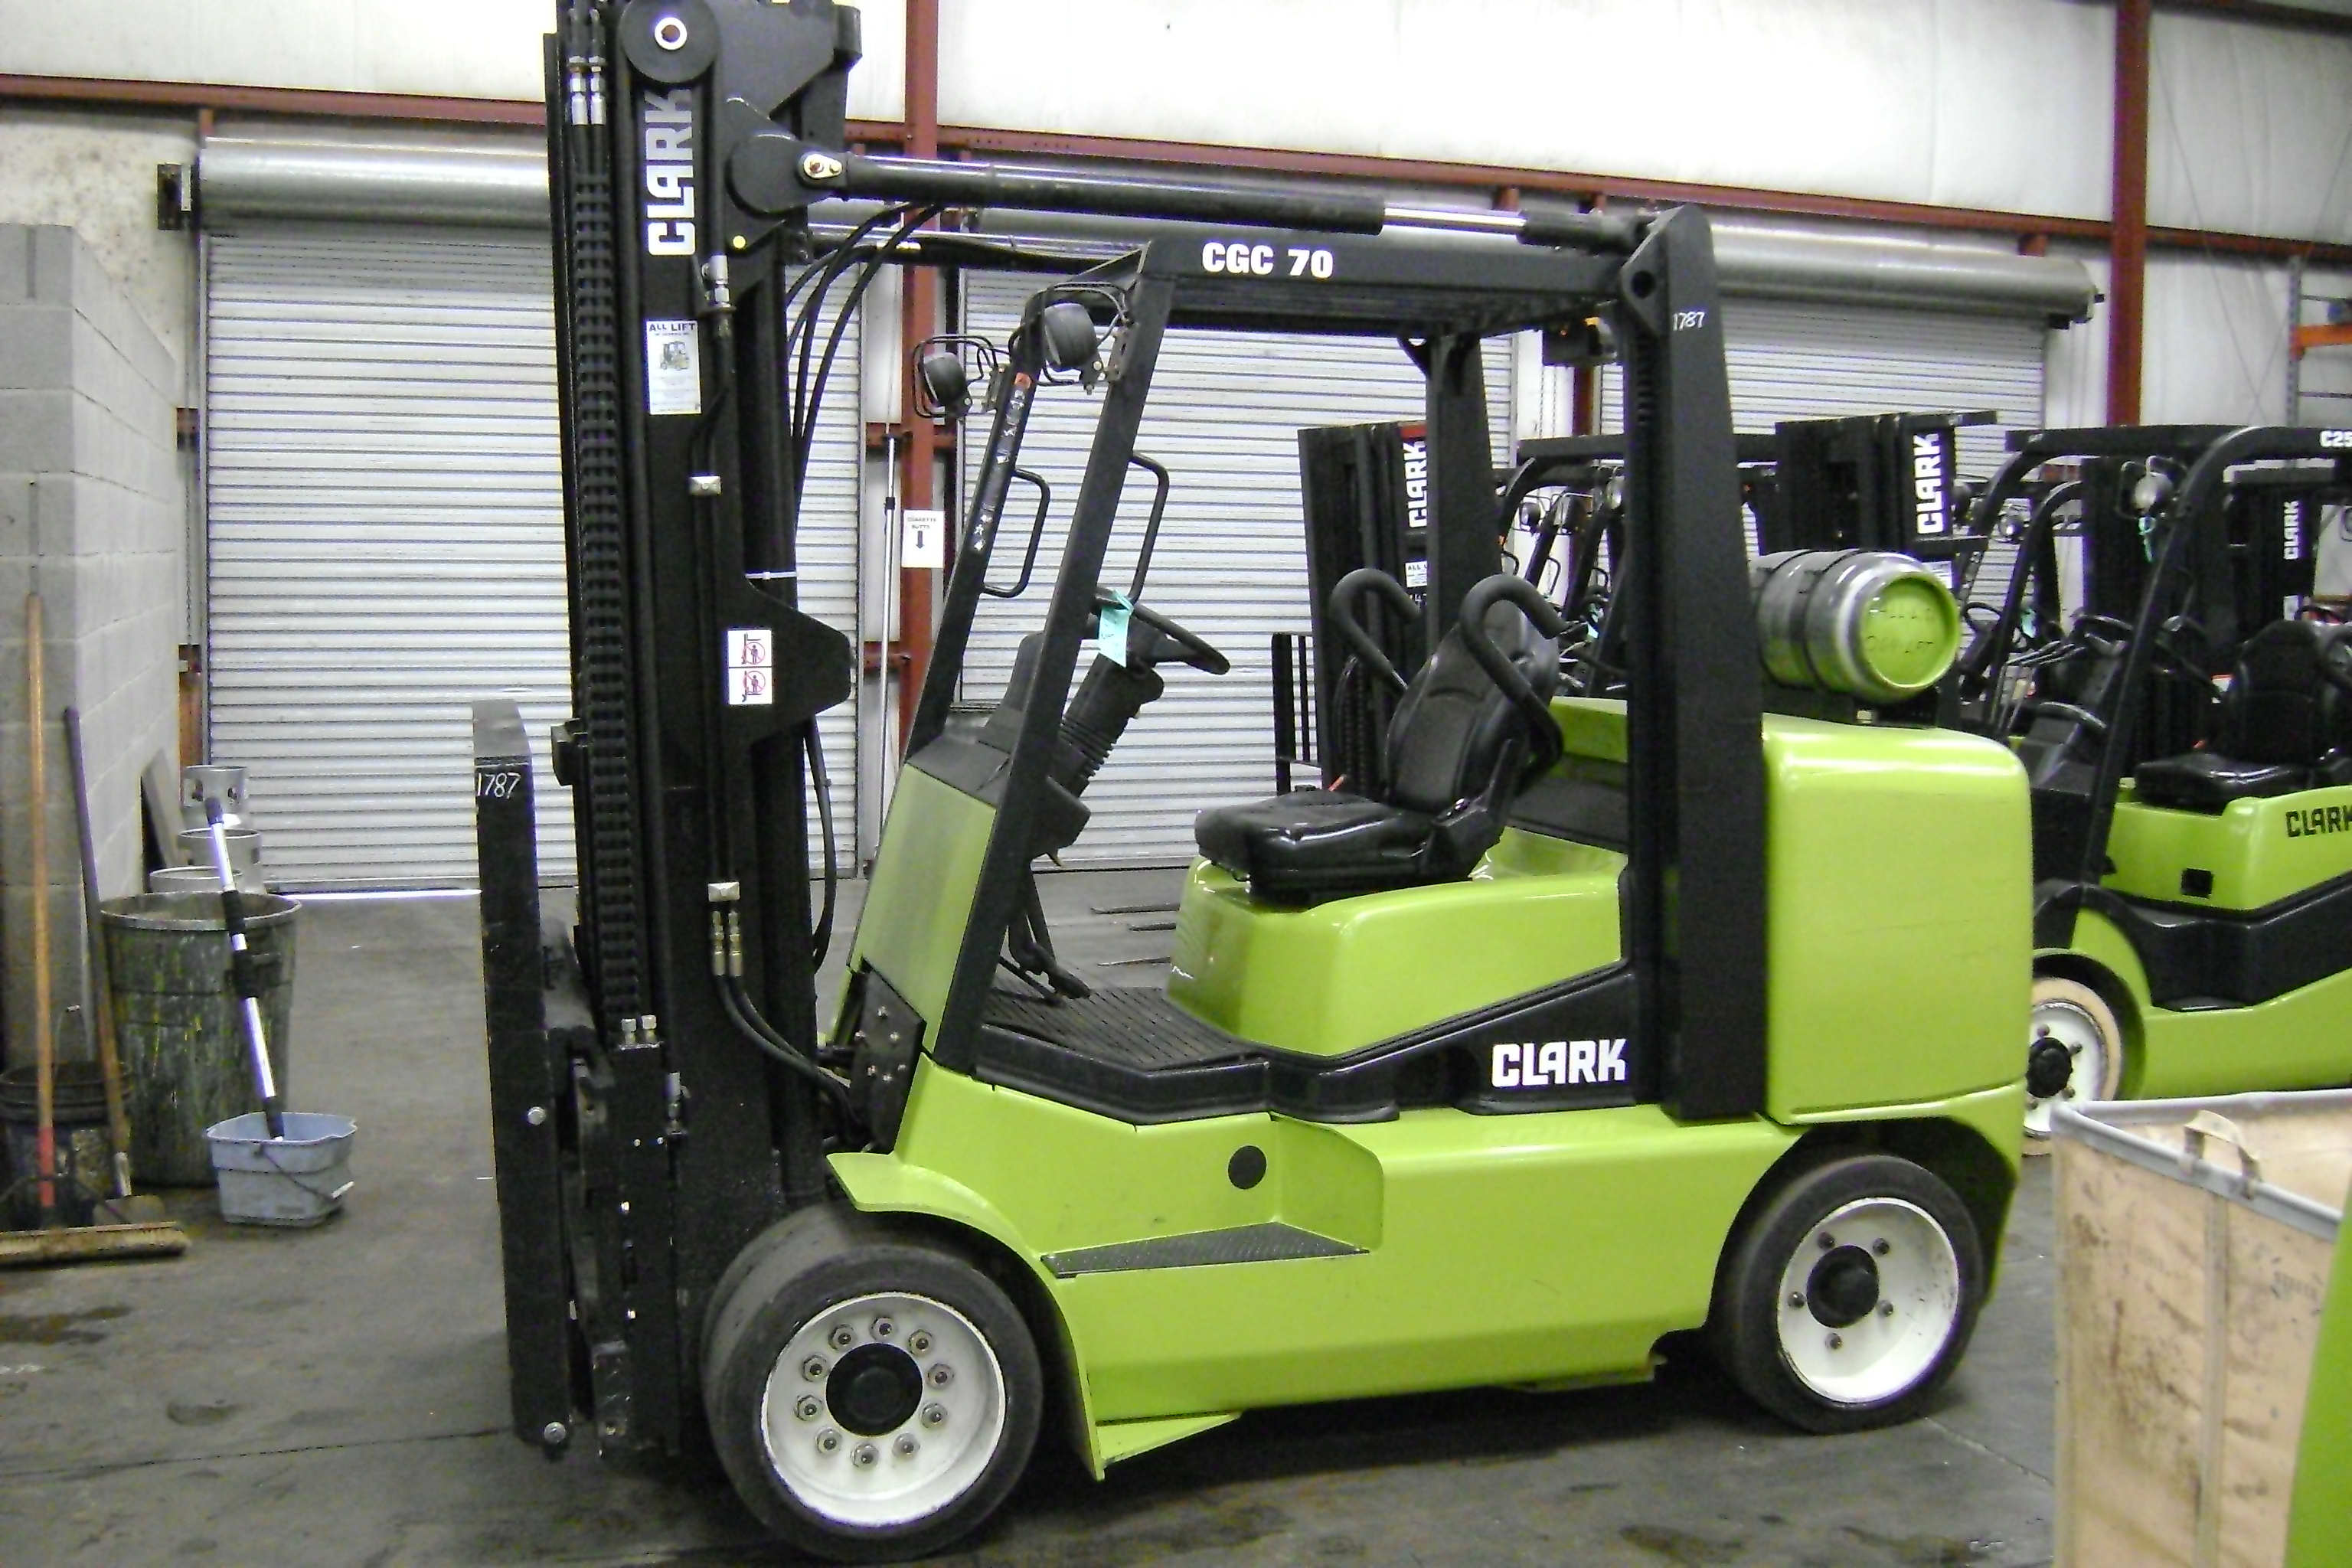 Clark forklift photo - 2